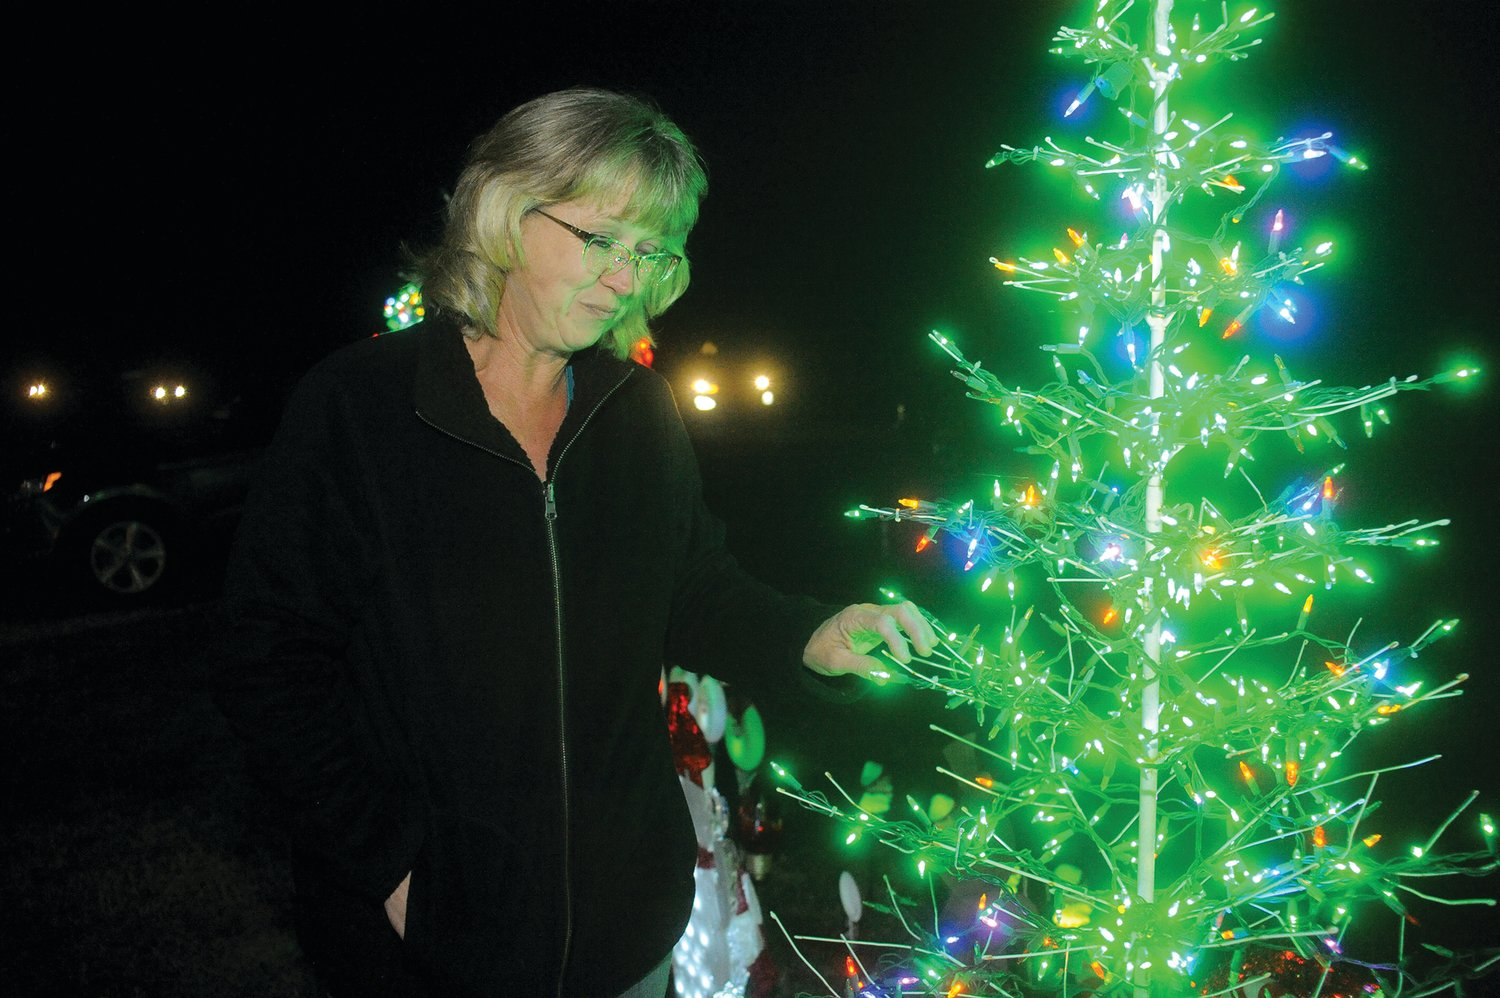 Michelle Mace checks and adjusts the lights on one of many trees decorated at her home for the Christmas season. Maintaining the display is one of the many tasks involved in keeping the holiday lights bright and cheery through the season.